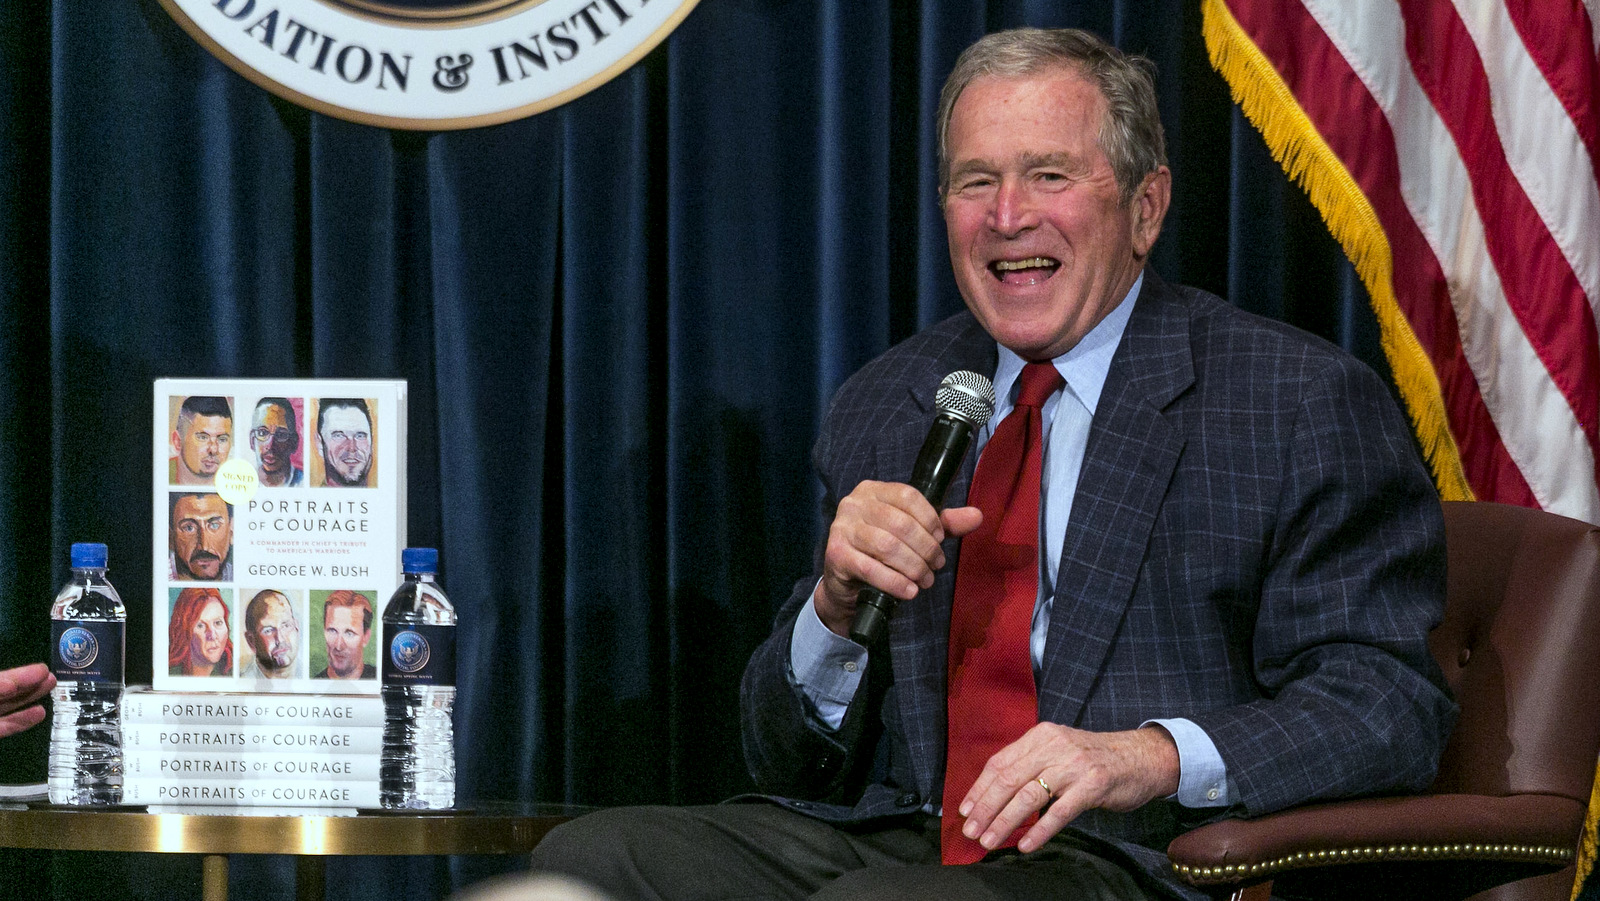 Former U.S. President George W. Bush discusses his new book at the Ronald Reagan Presidential Library in Simi Valley, Calif., Wednesday, March 1, 2017. (AP/Damian Dovarganes)